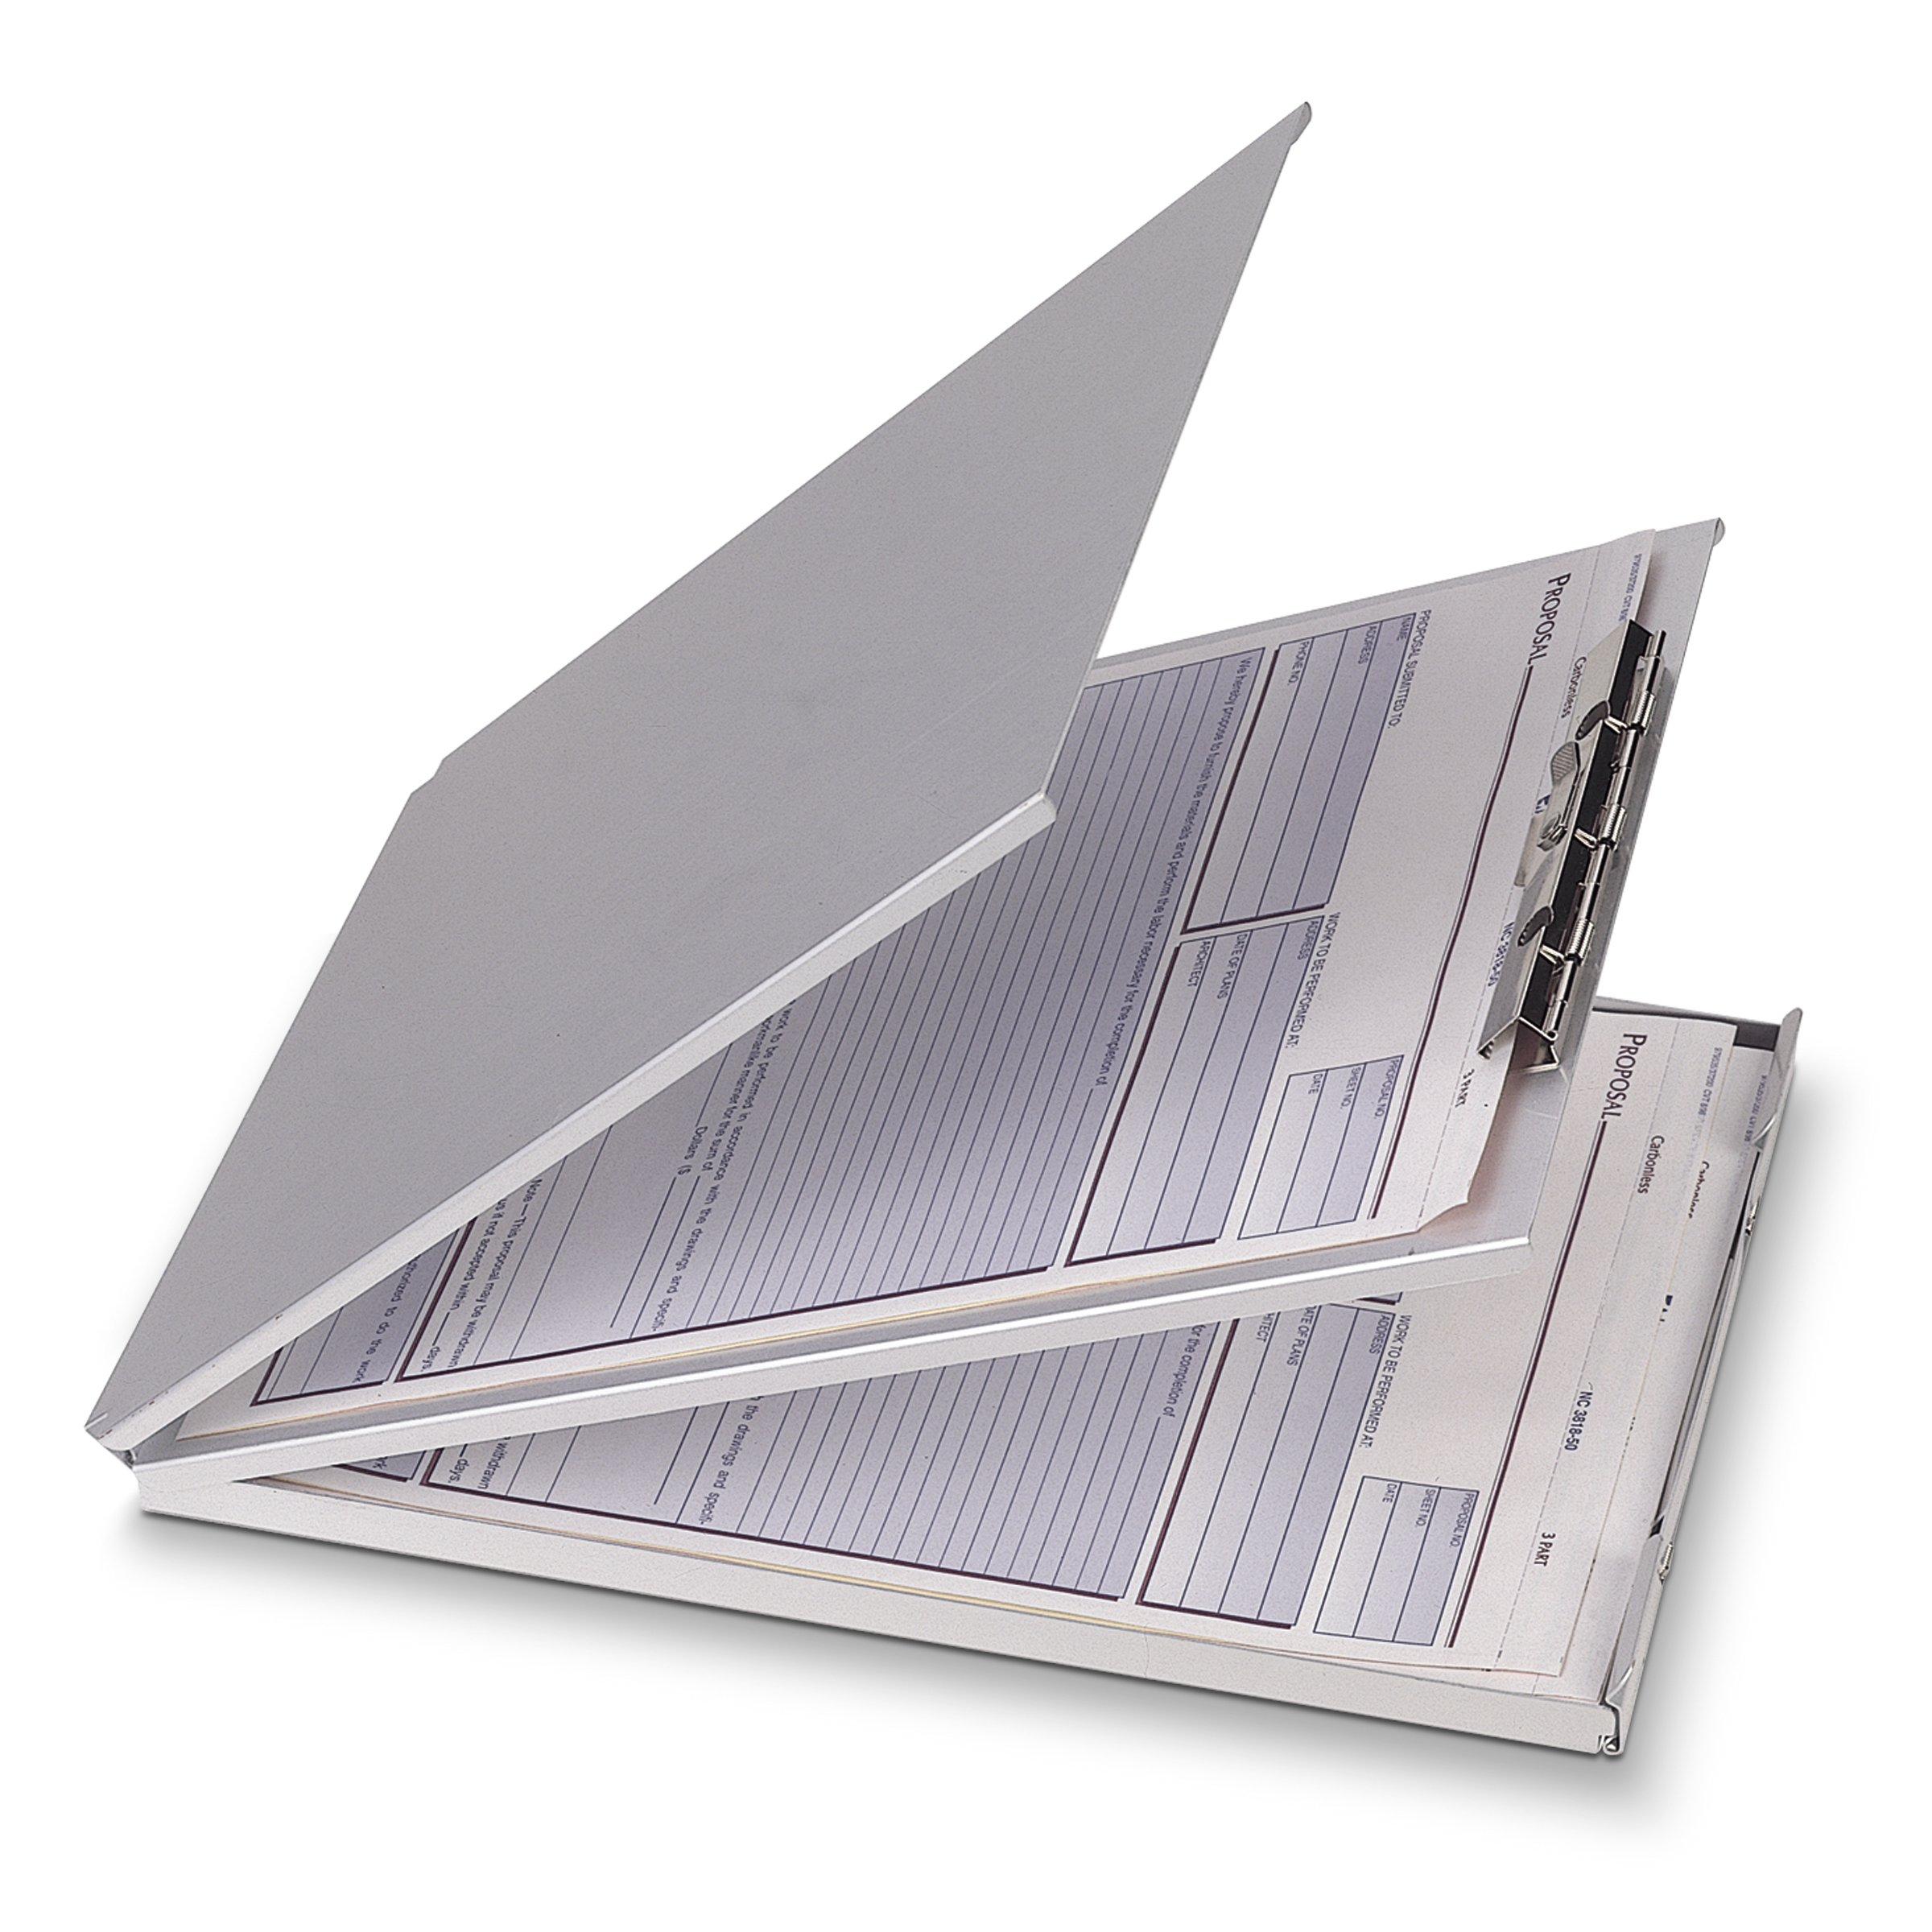 Officemate Top Loading Aluminum Form Holder For Files 5 2/3 x 9 1/2 Inches, 30 Page Capacity, Silver (83205)